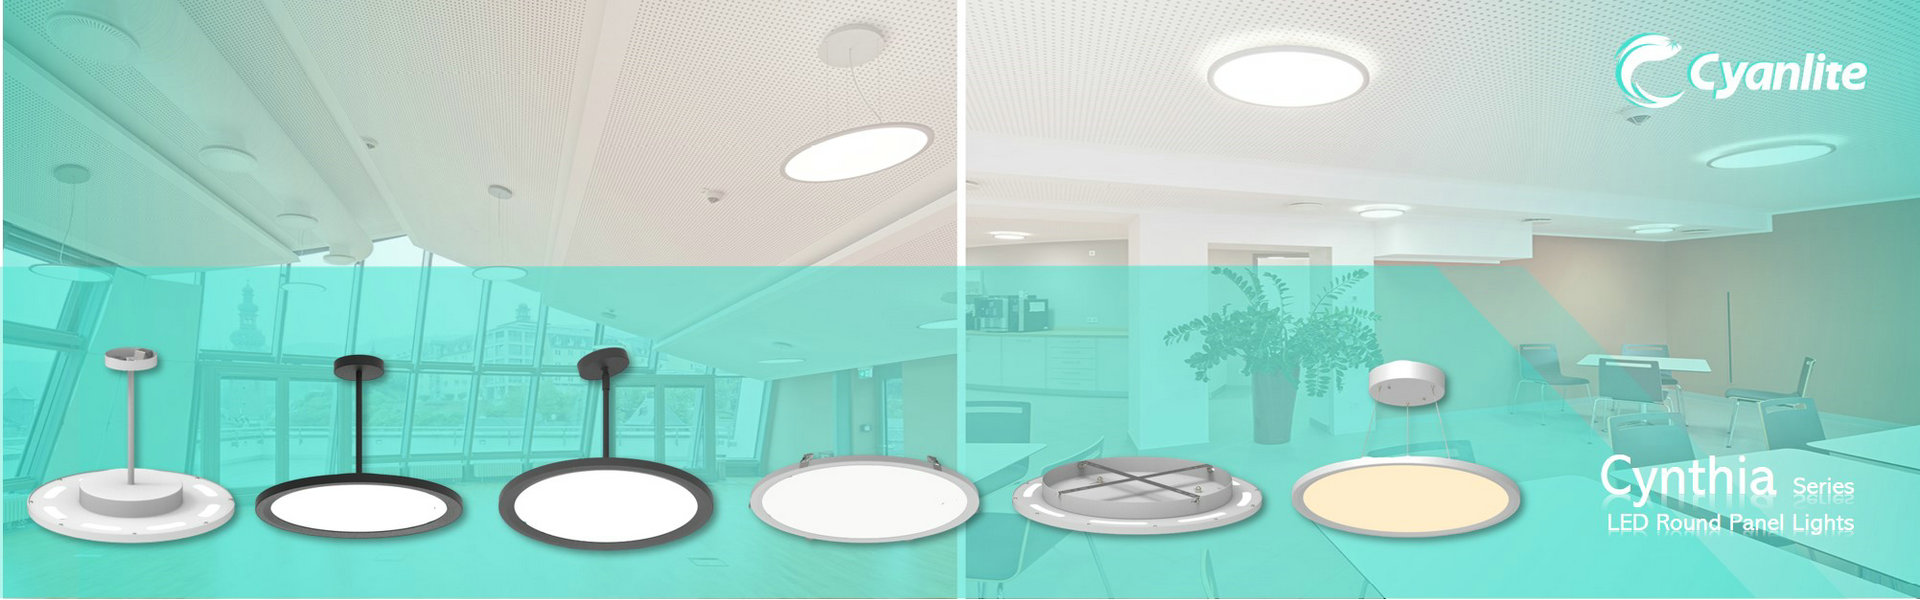 Cyanlite Cynthia LED Round Panel Light